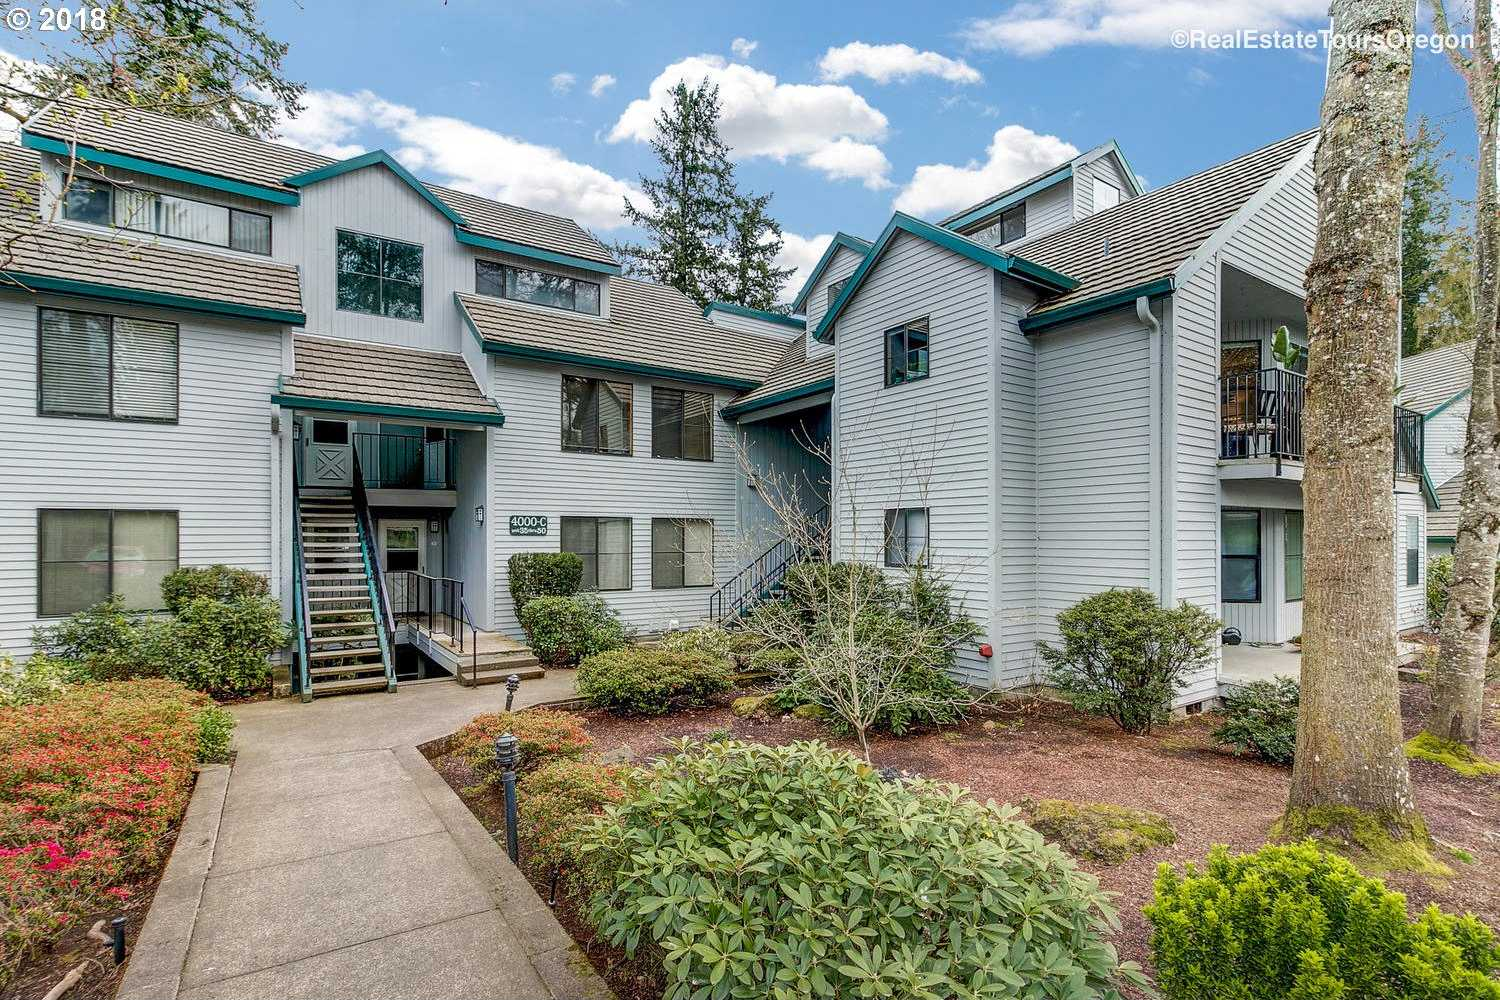 $244,900 - 1Br/1Ba -  for Sale in Lake Oswego